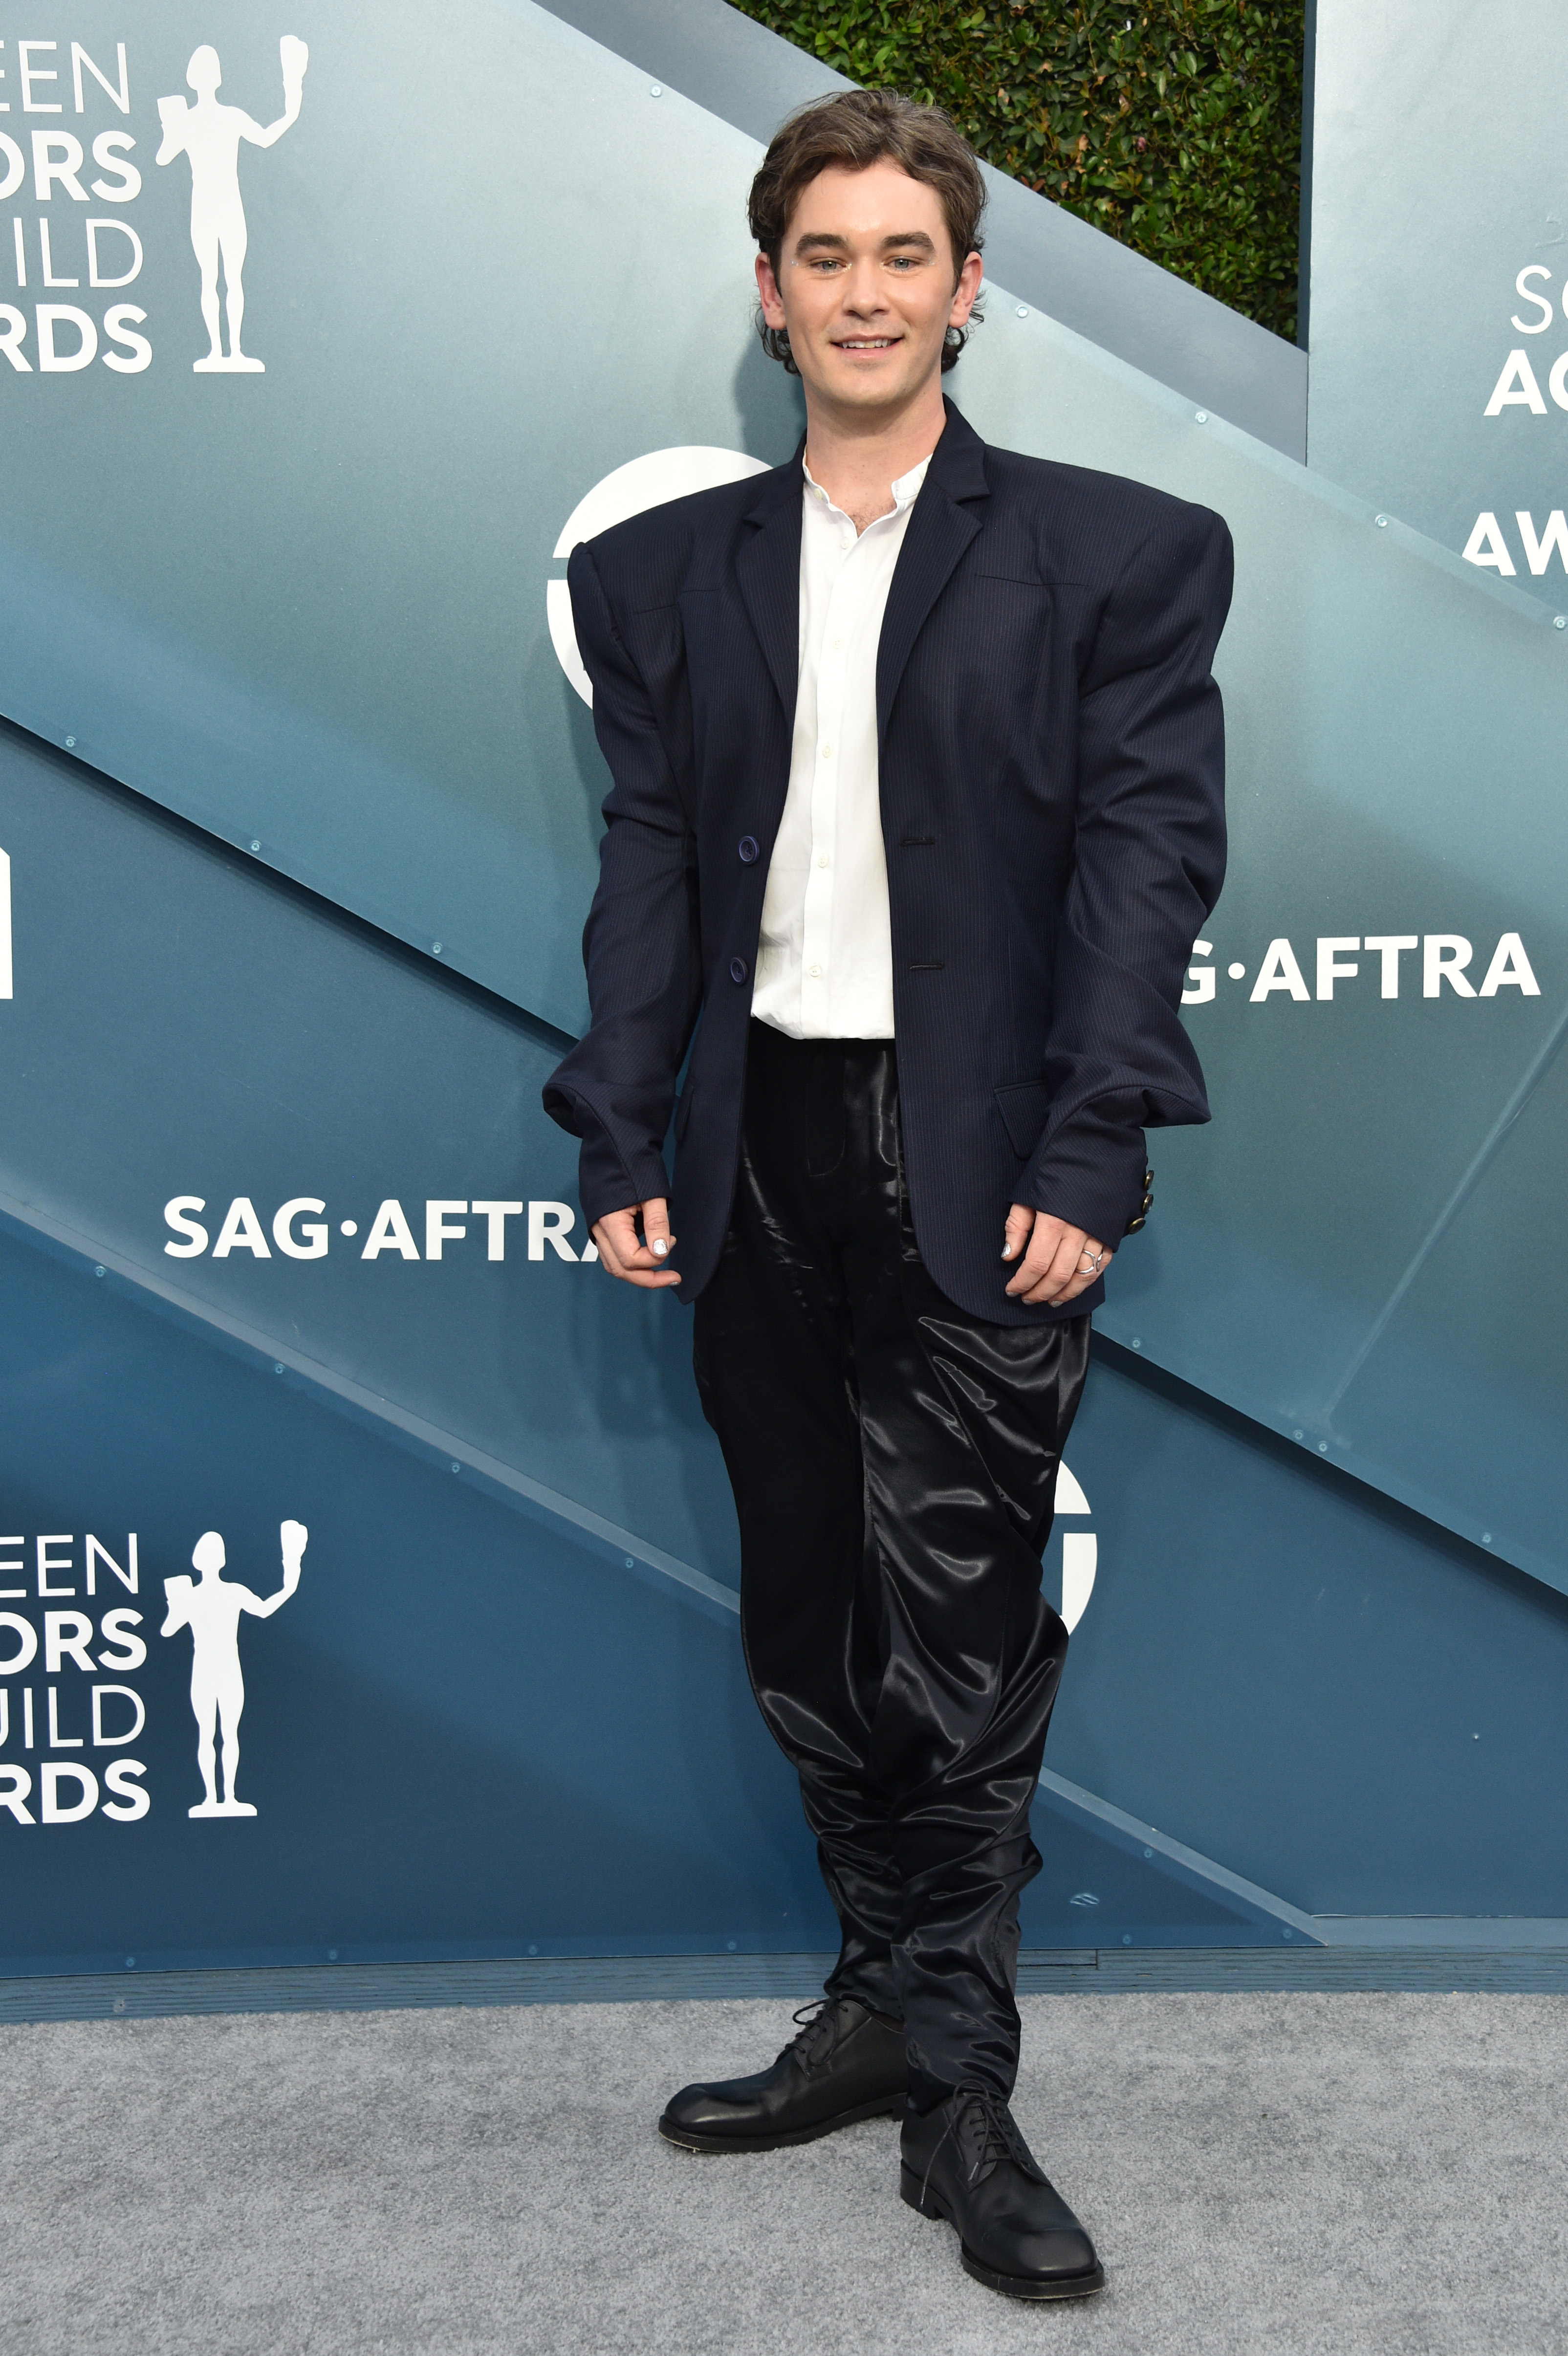 LOS ANGELES, CALIFORNIA - JANUARY 19:  Casey Thomas Brown attends the 26th Annual Screen ActorsGuild Awards at The Shrine Auditorium on January 19, 2020 in Los Angeles, California. 721430 (Photo by Gregg DeGuire/Getty Images for Turner)